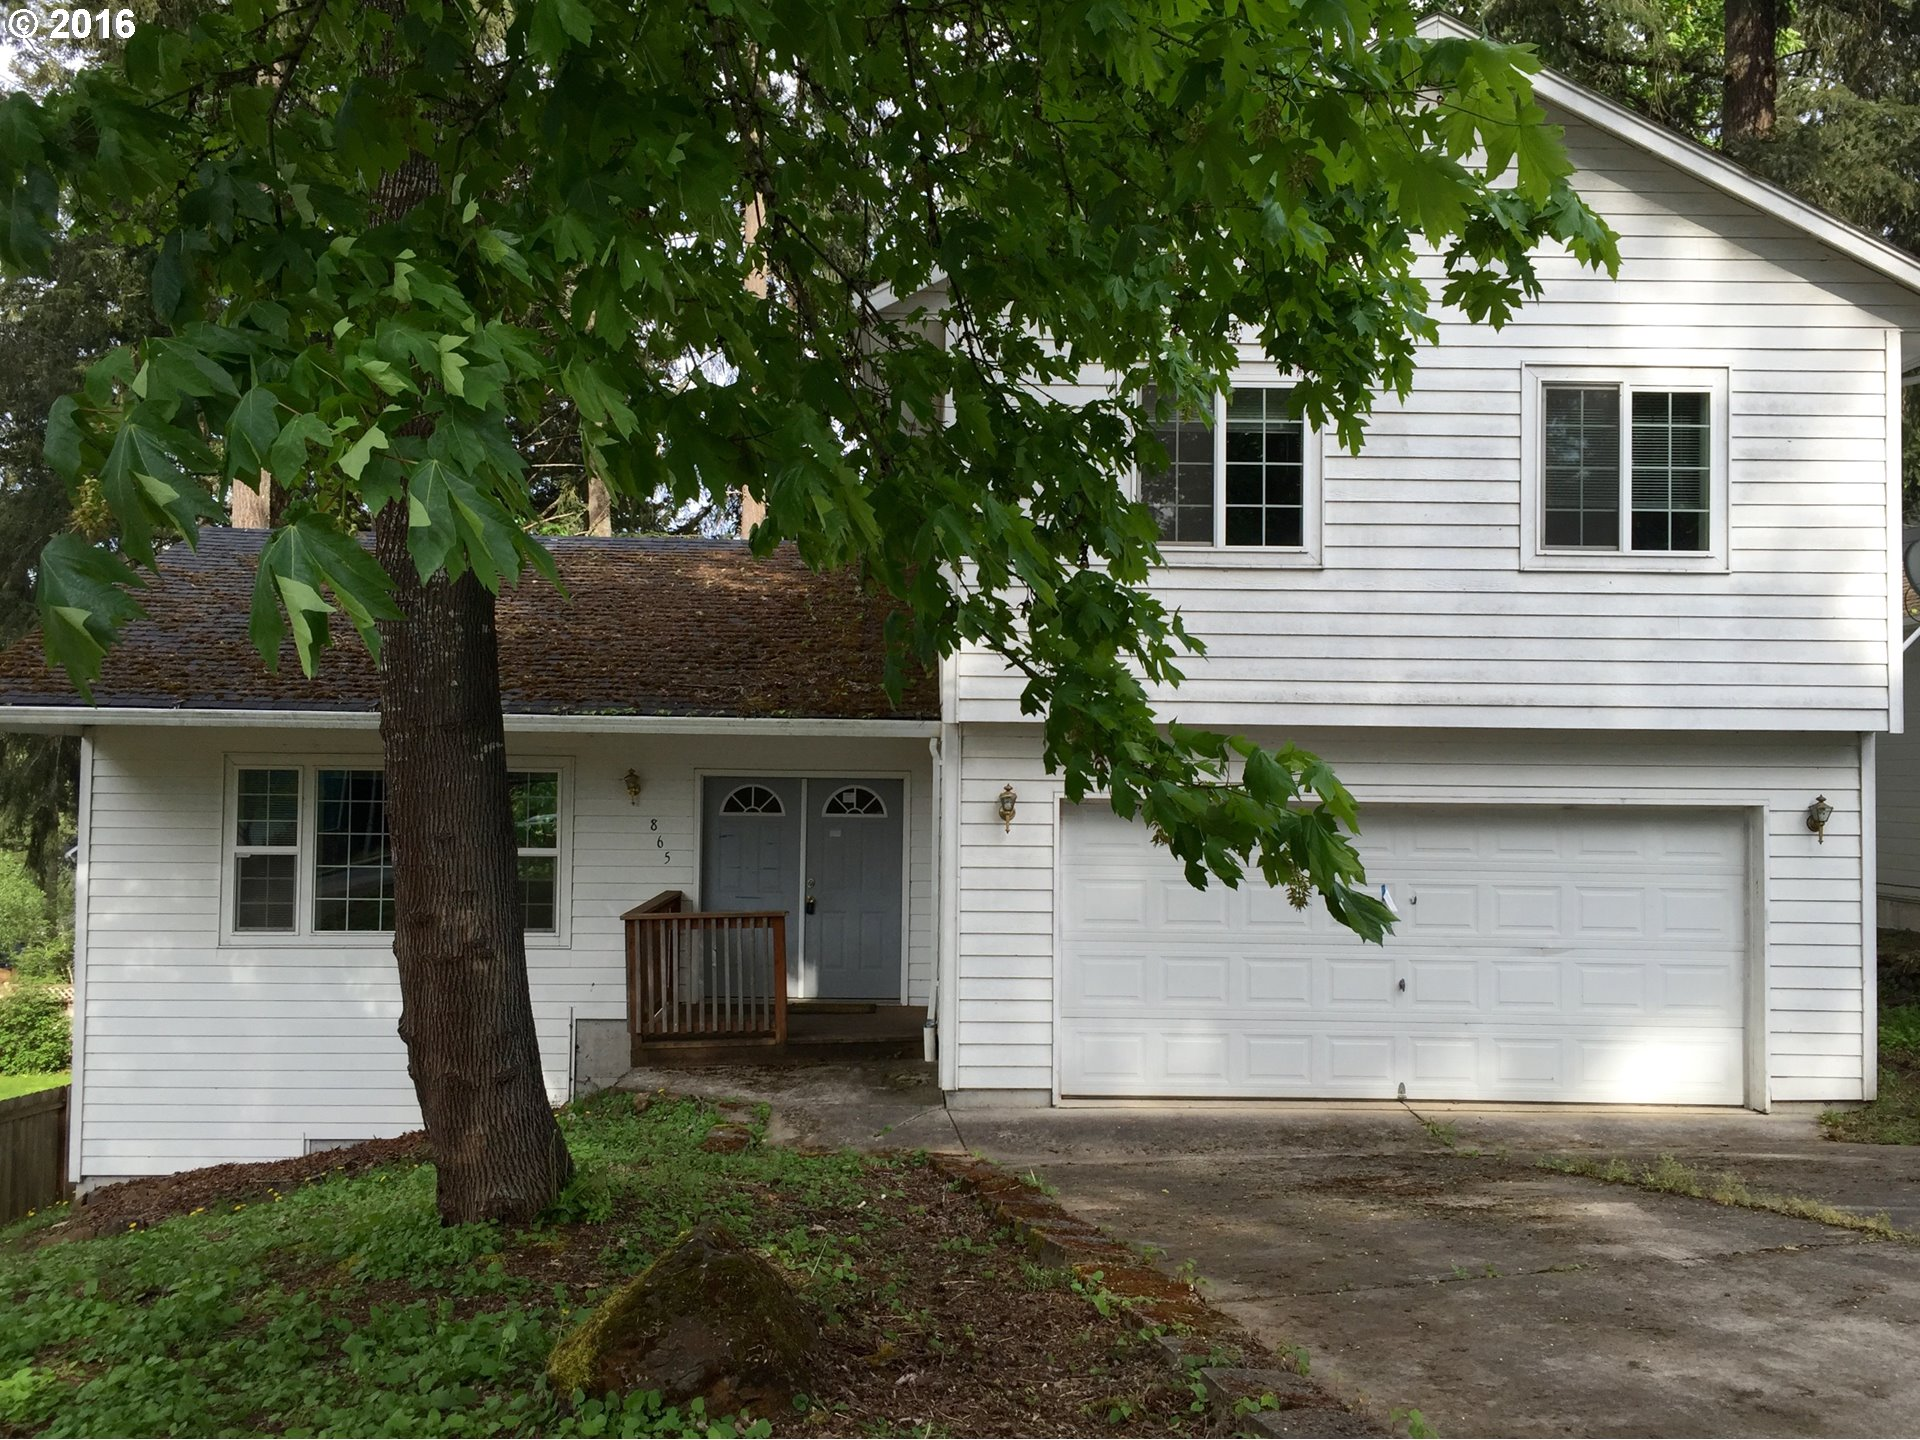 865 S 69TH ST, Springfield, OR 97478